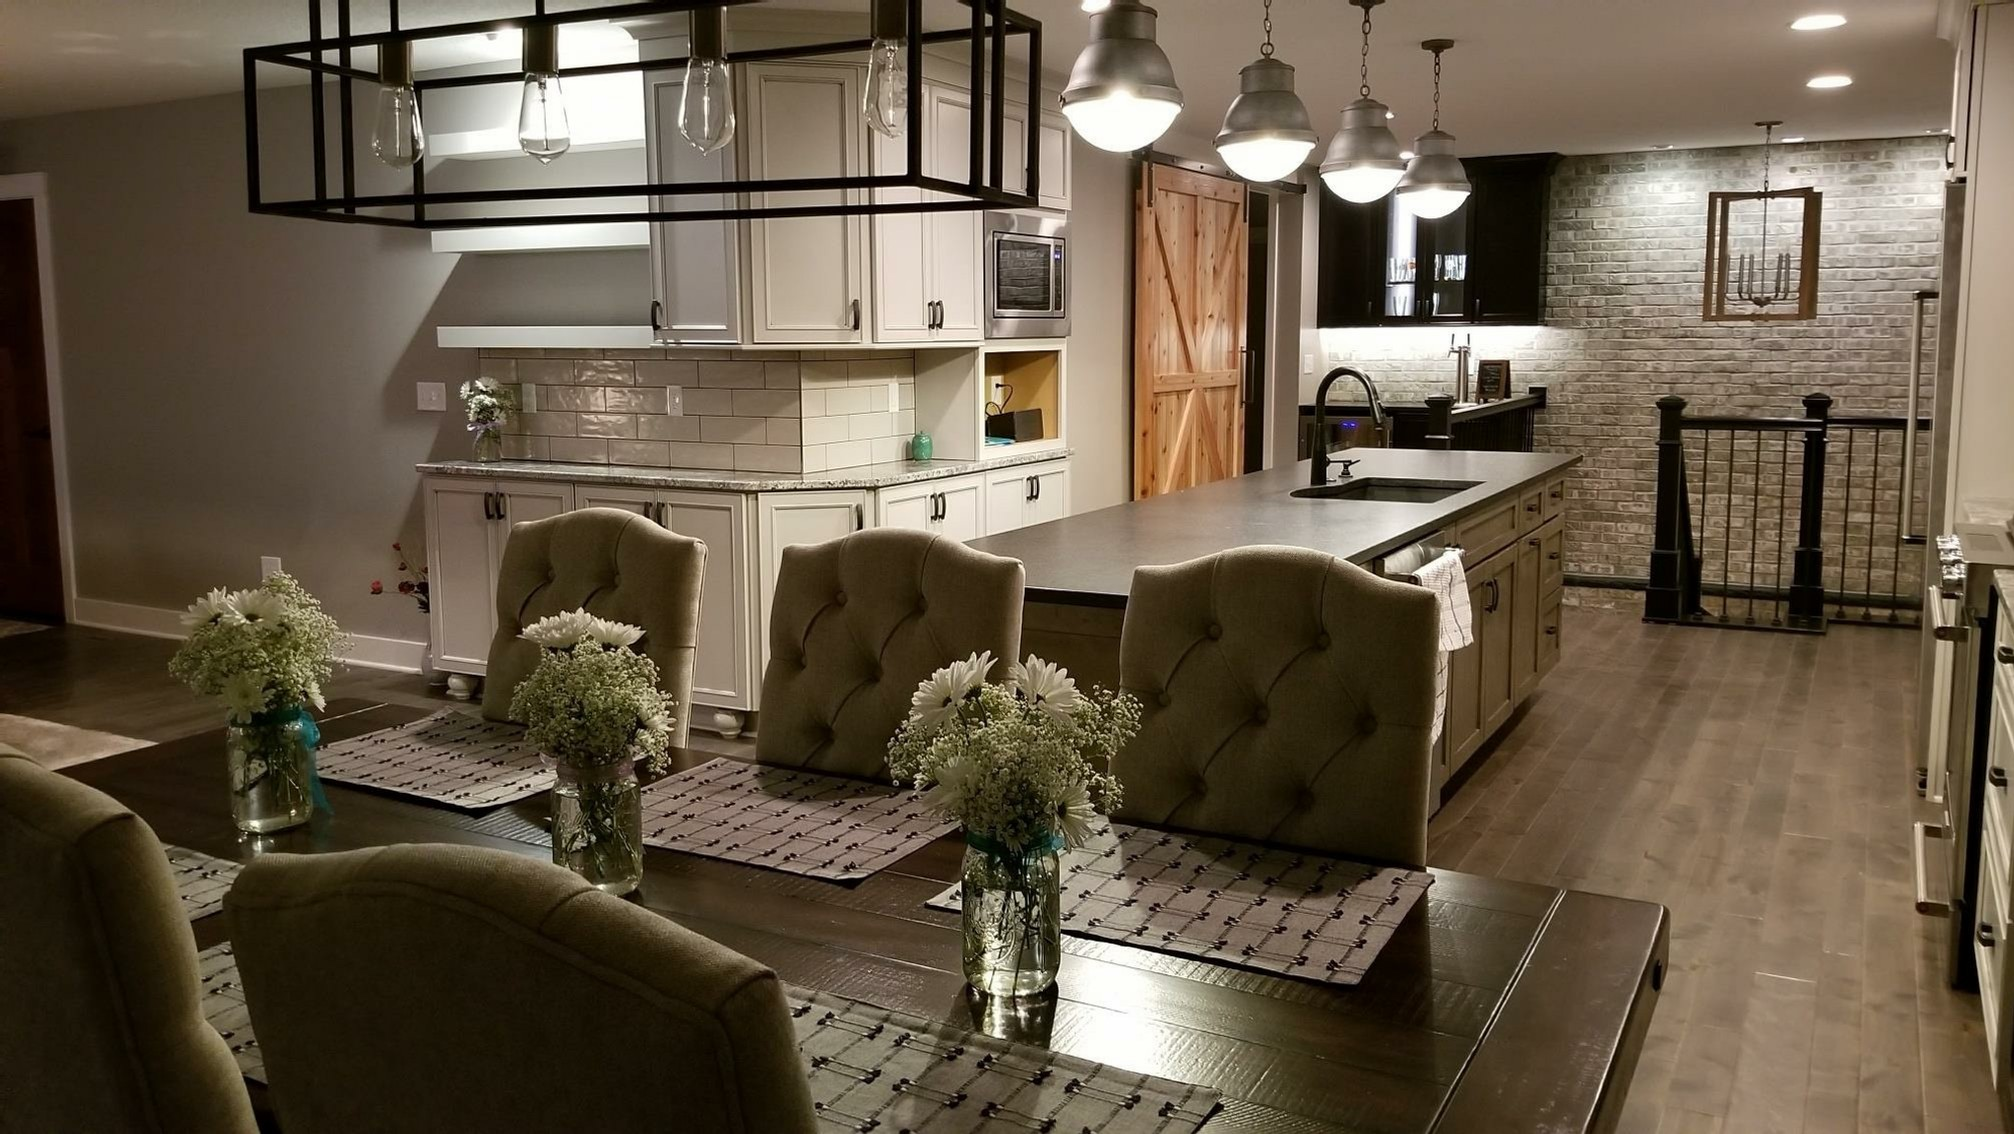 Tons of custom features in this kitchen remodel